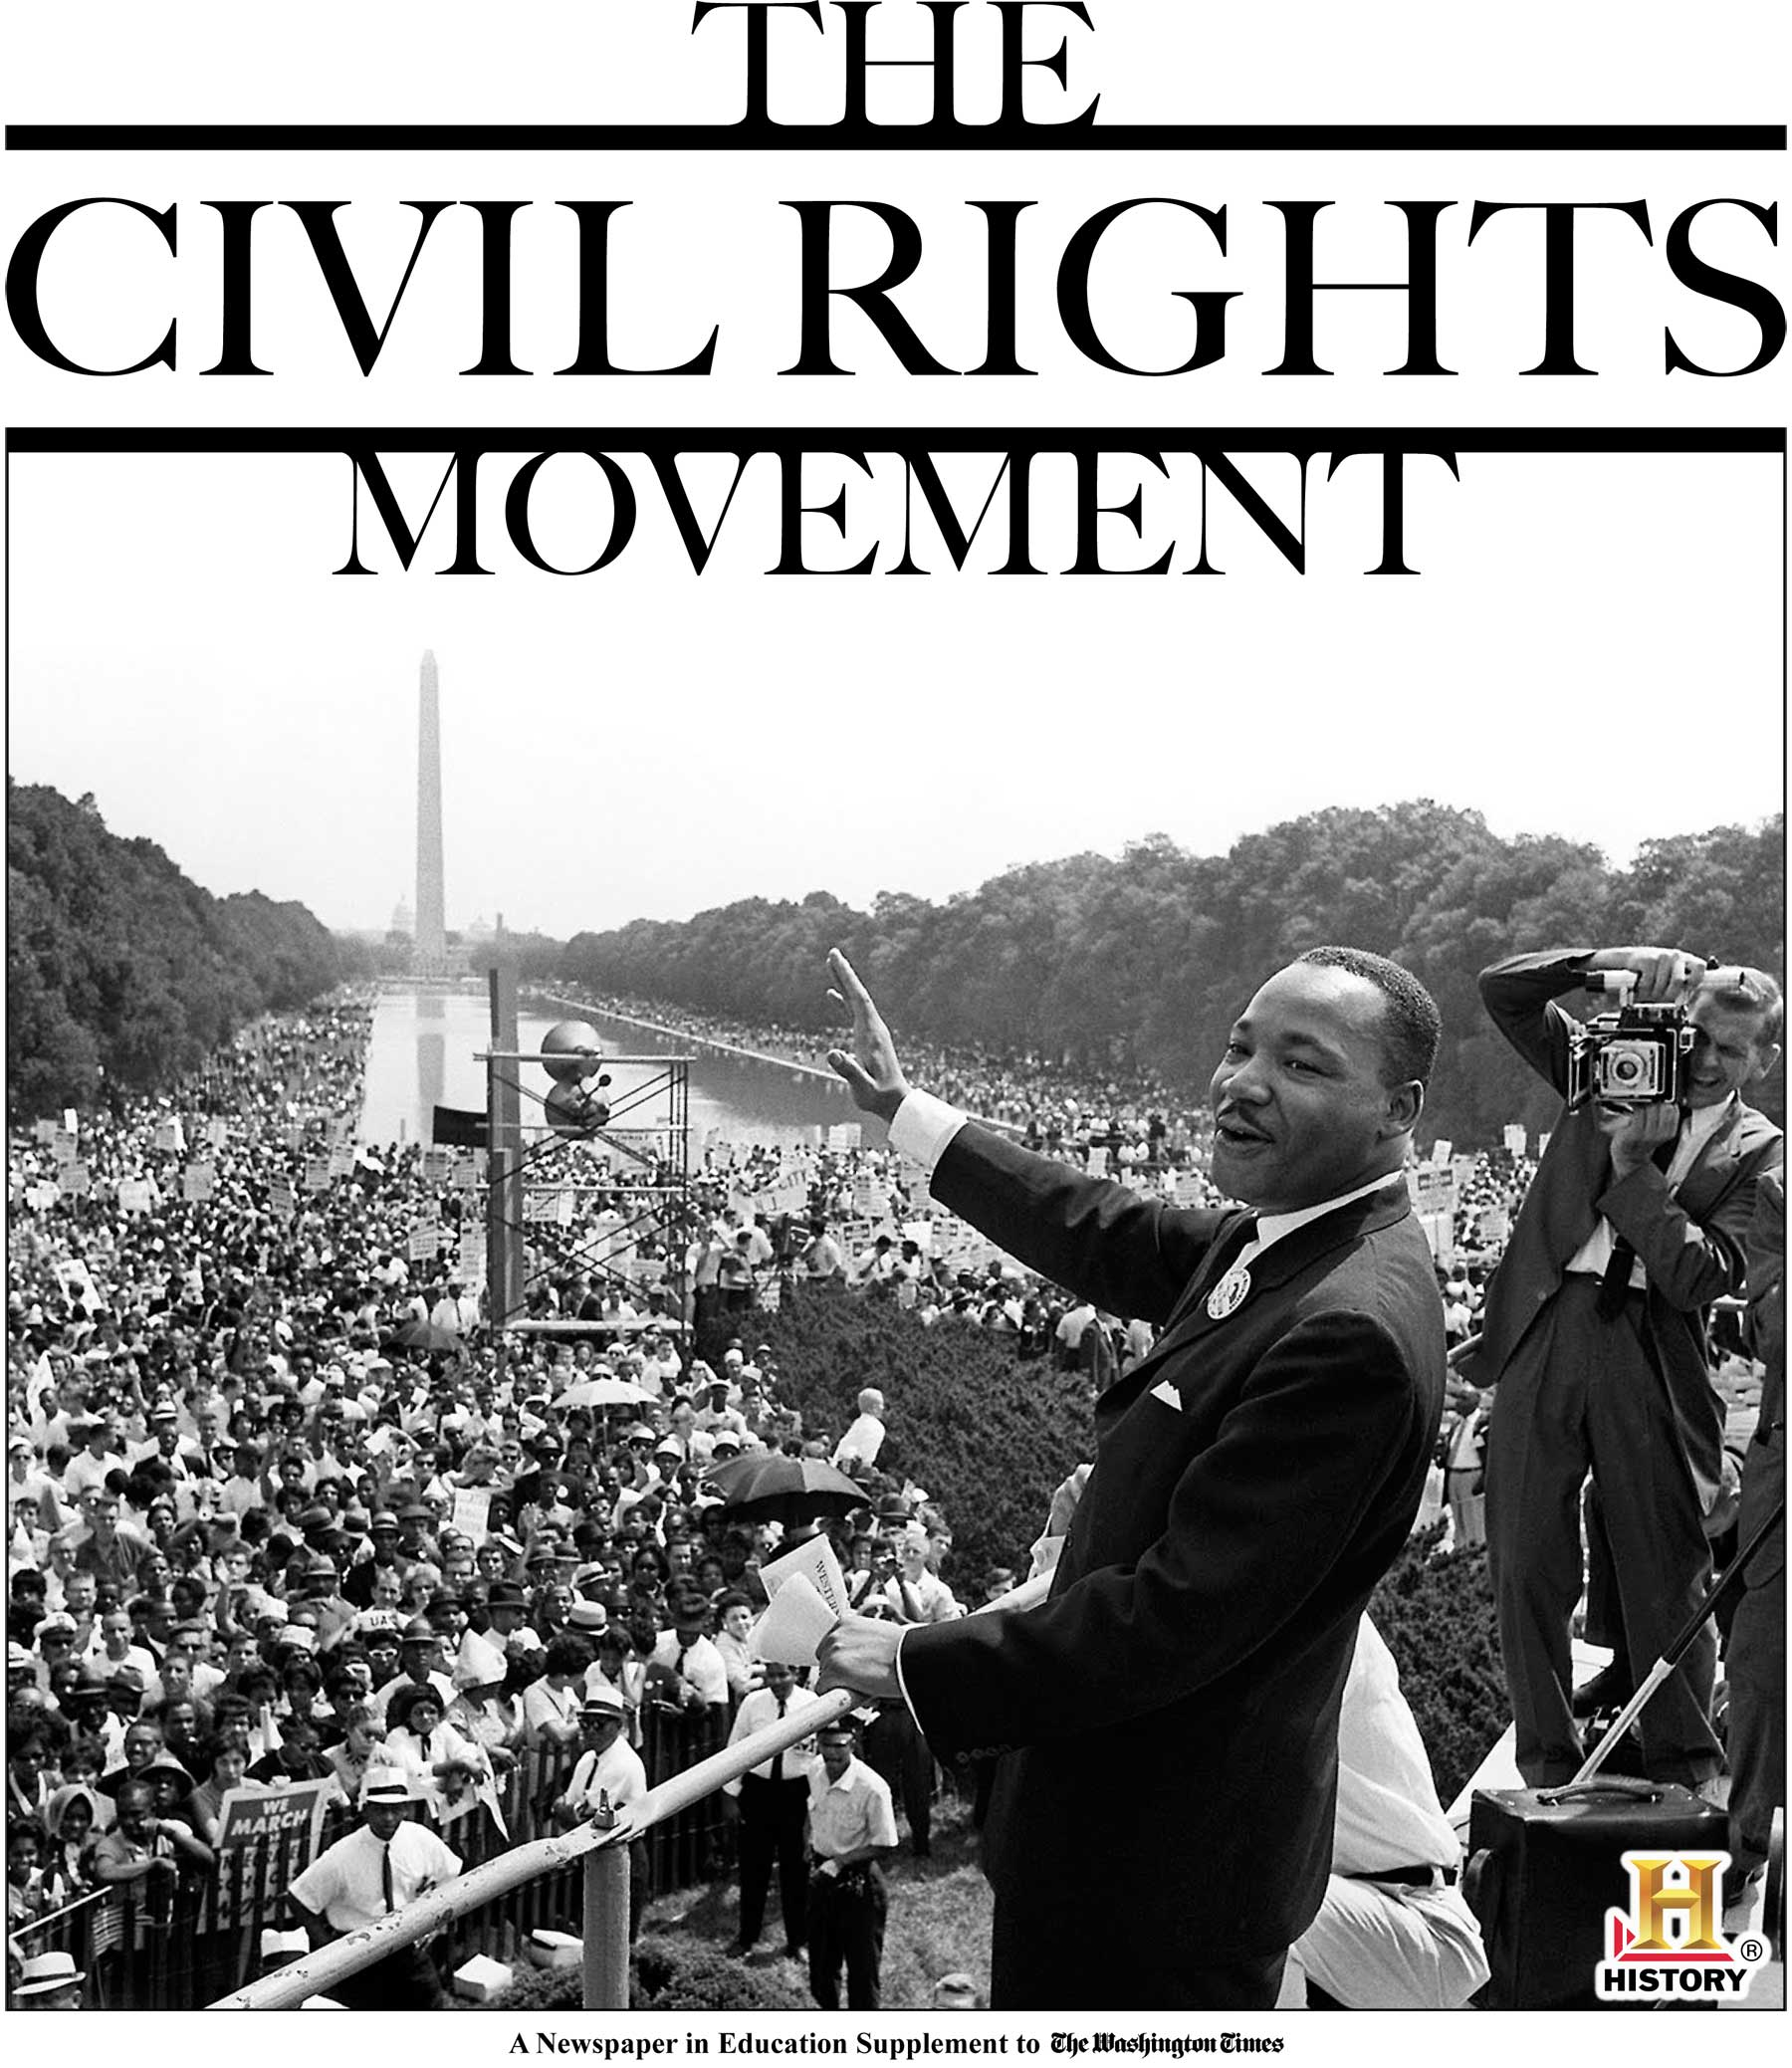 leaders of the civil rights movement Share your dream now and visit the king center digital archive to see more than 10,000 documents from martin luther king's personal collection and from the civil rights movement.